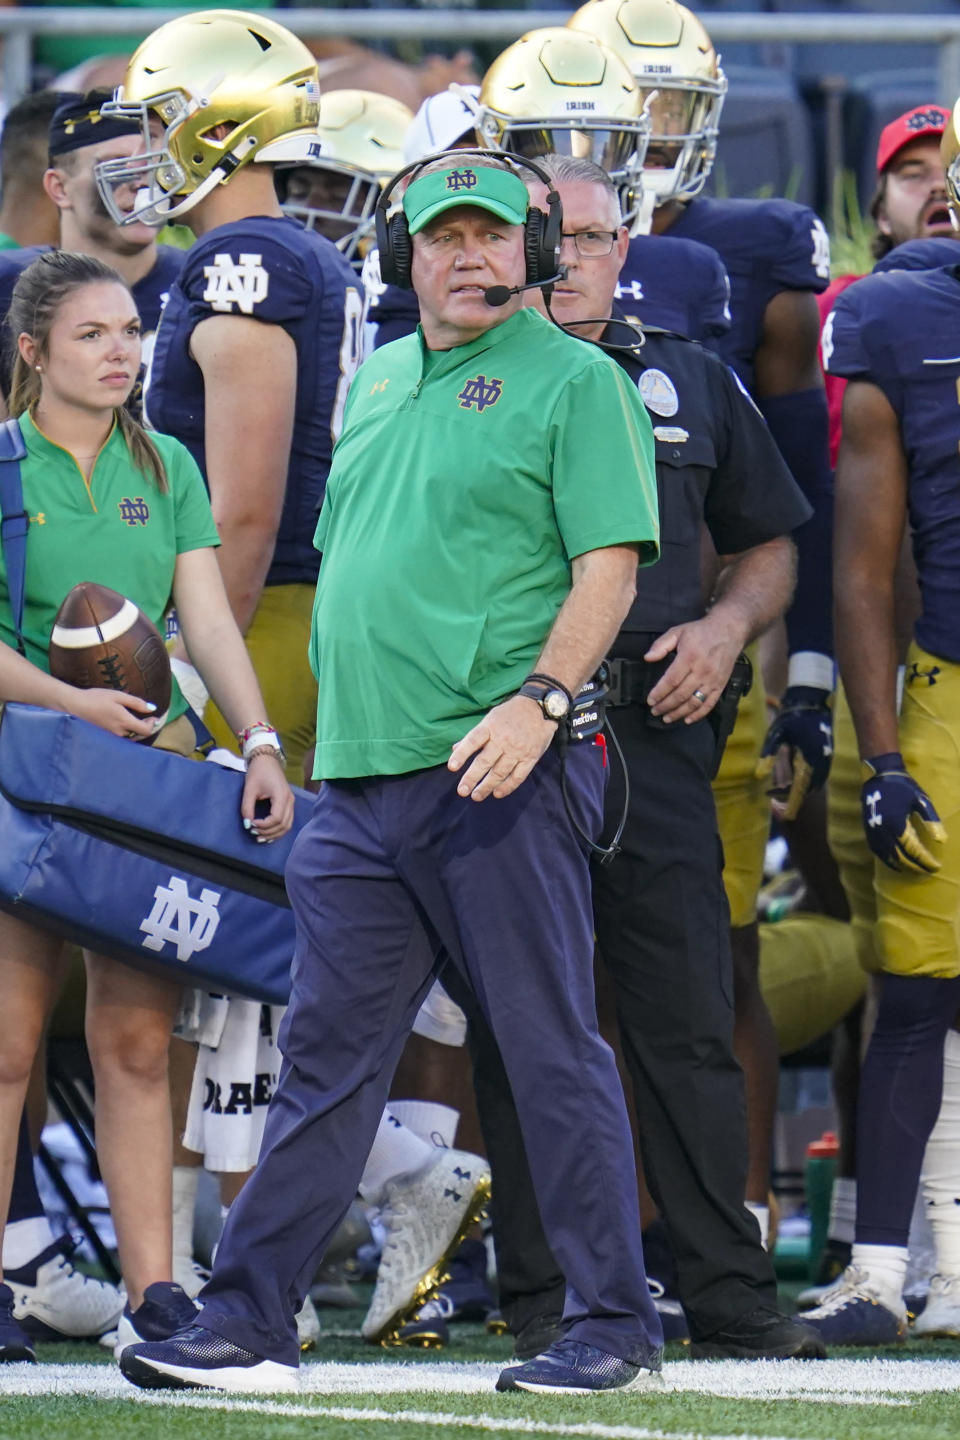 Notre Dame head coach Brian Kelly walks on the sideline during the second half of an NCAA college football game against Purdue in South Bend, Ind., Saturday, Sept. 18, 2021. Notre Dame defeated Purdue 27-13. (AP Photo/Michael Conroy)